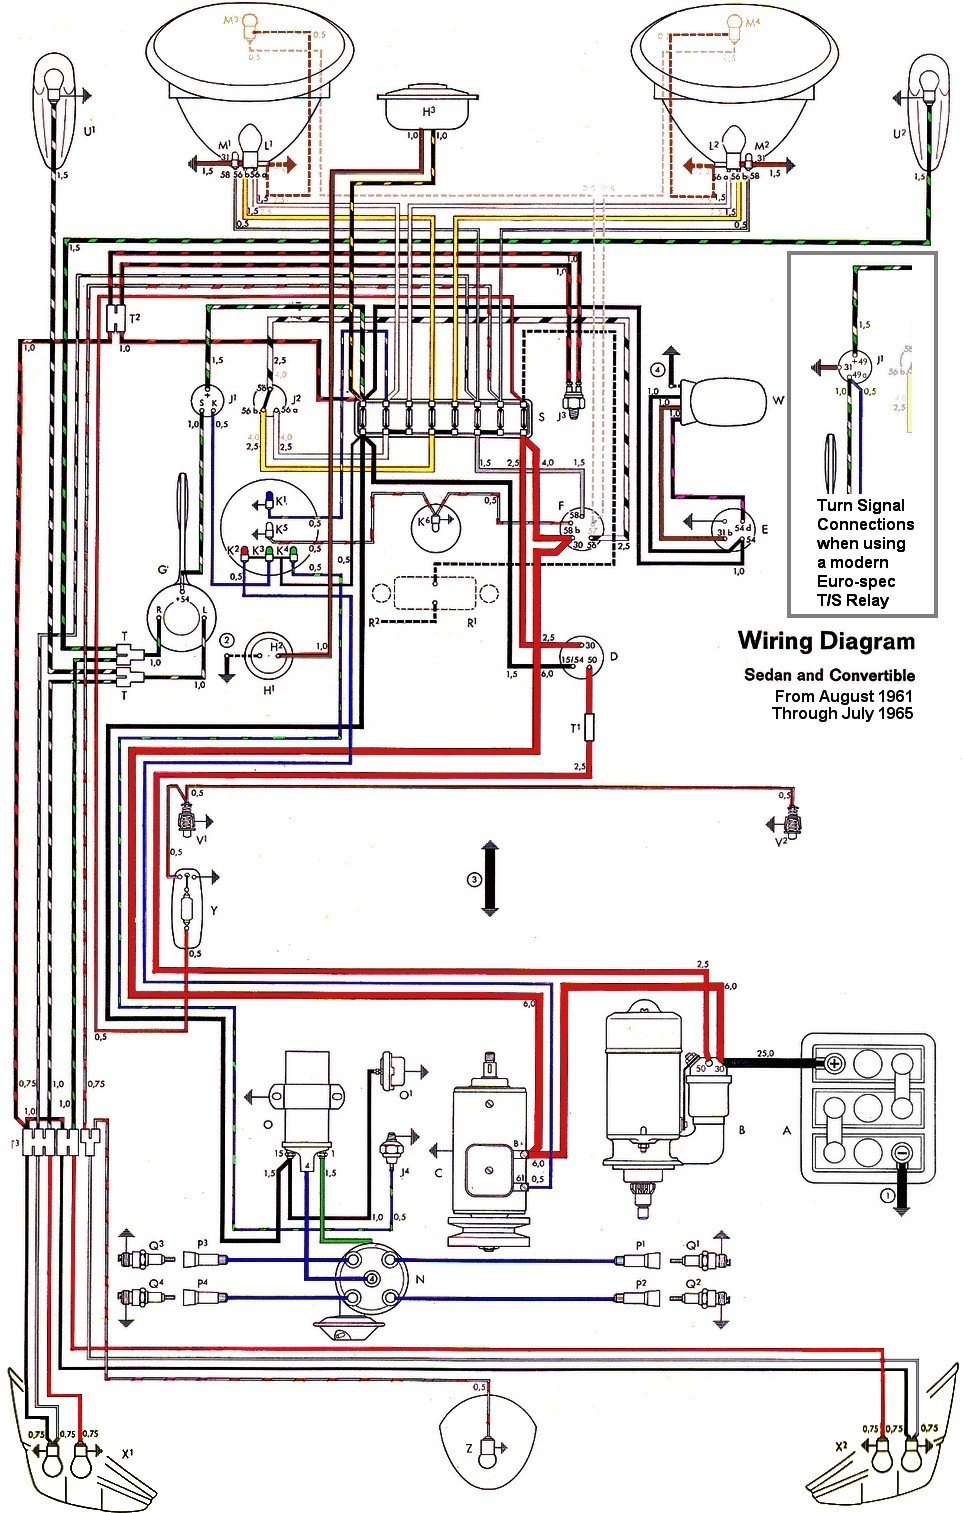 bug_62 65withinset wiring diagram vw beetle sedan and convertible 1961 1965 vw new beetle wiring diagram at bayanpartner.co